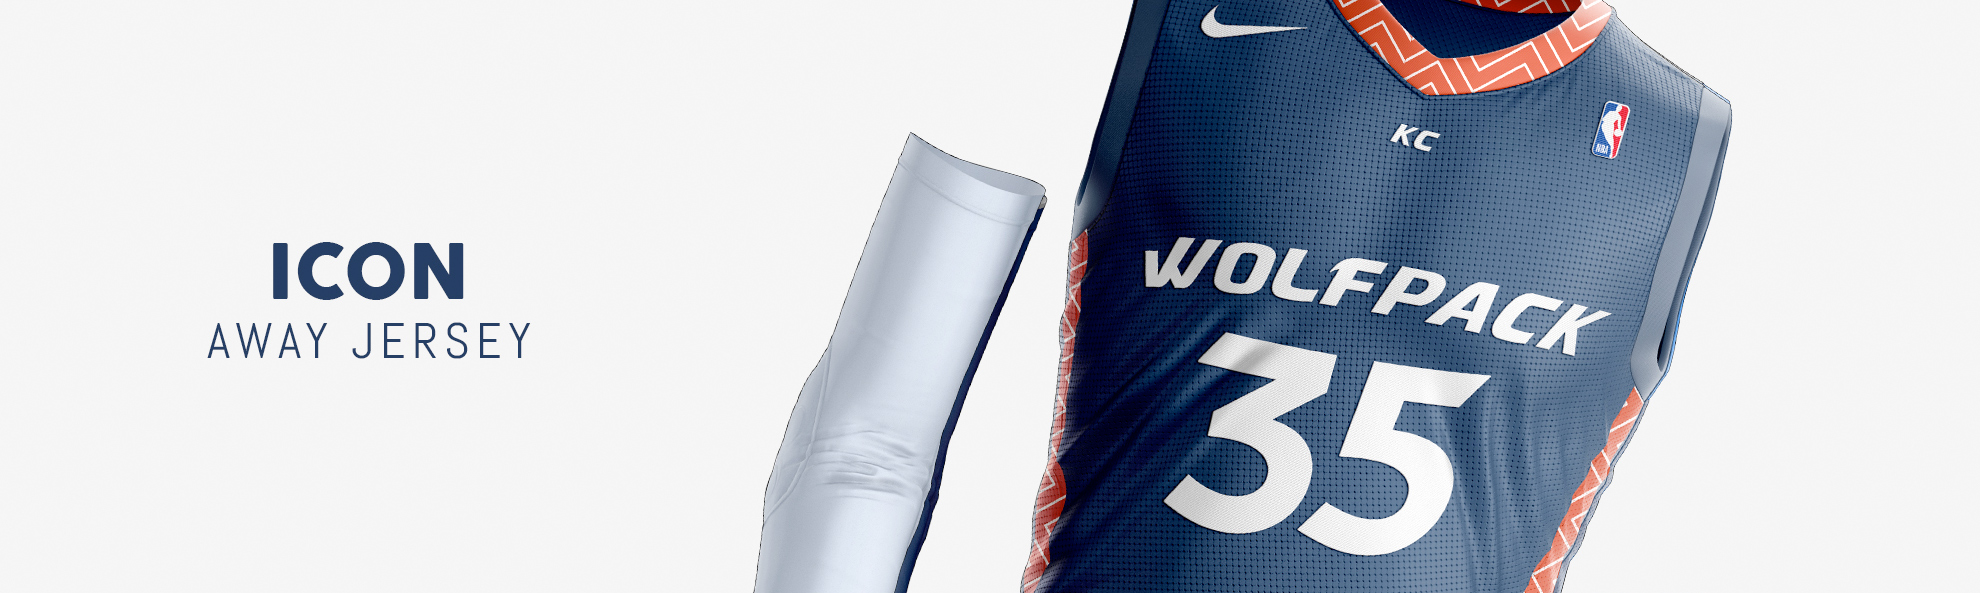 nba_wolfpack_jersey_icon